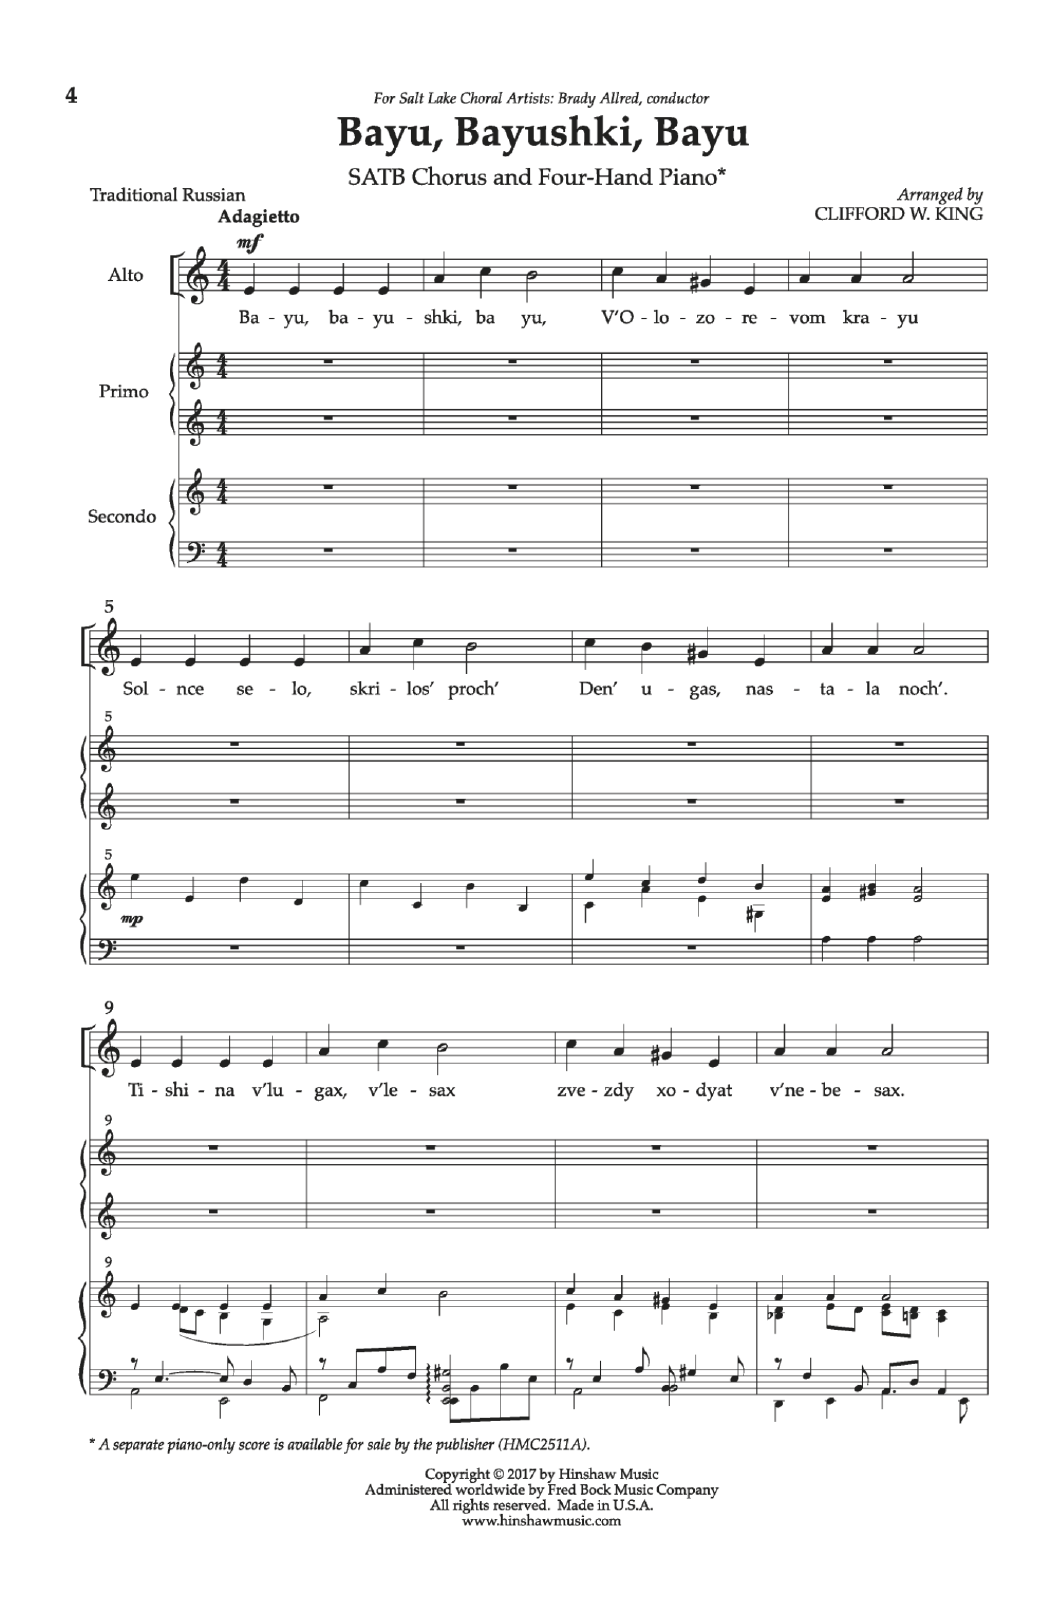 Bayu, Bayushki, Bayu Sheet Music